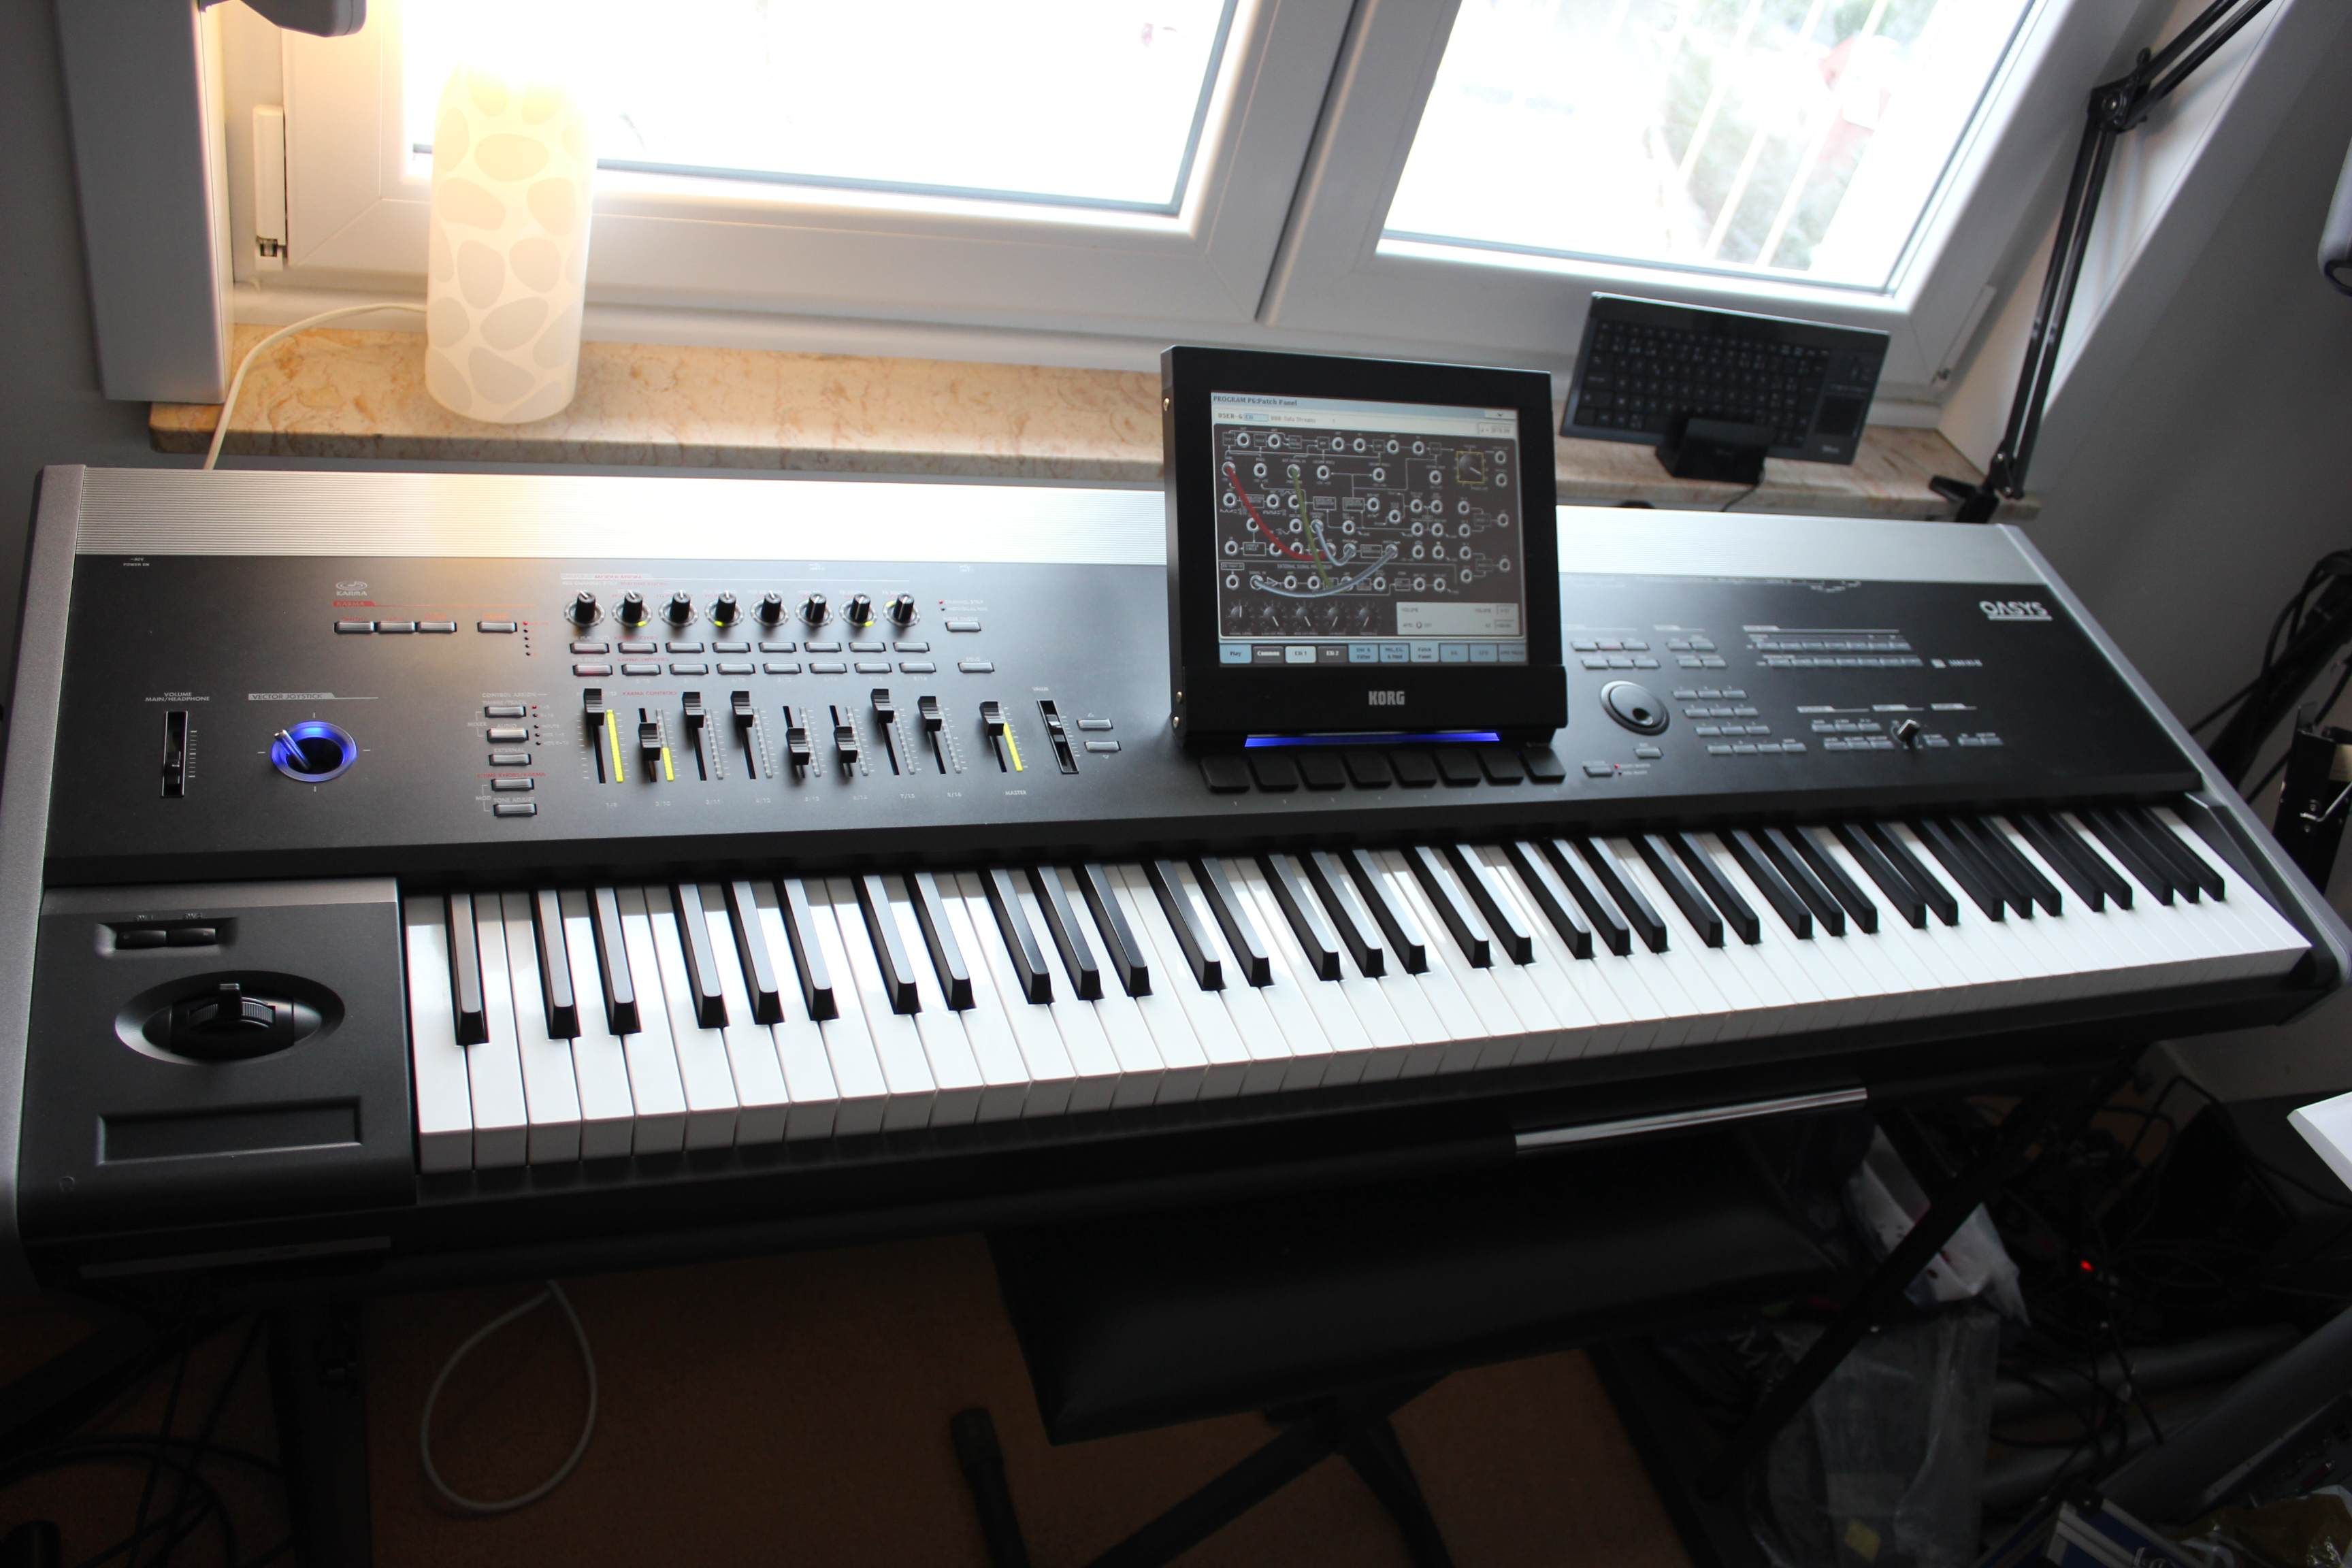 Korg OASYS 88 88-Key Workstation - View Musical Keyboard from ...